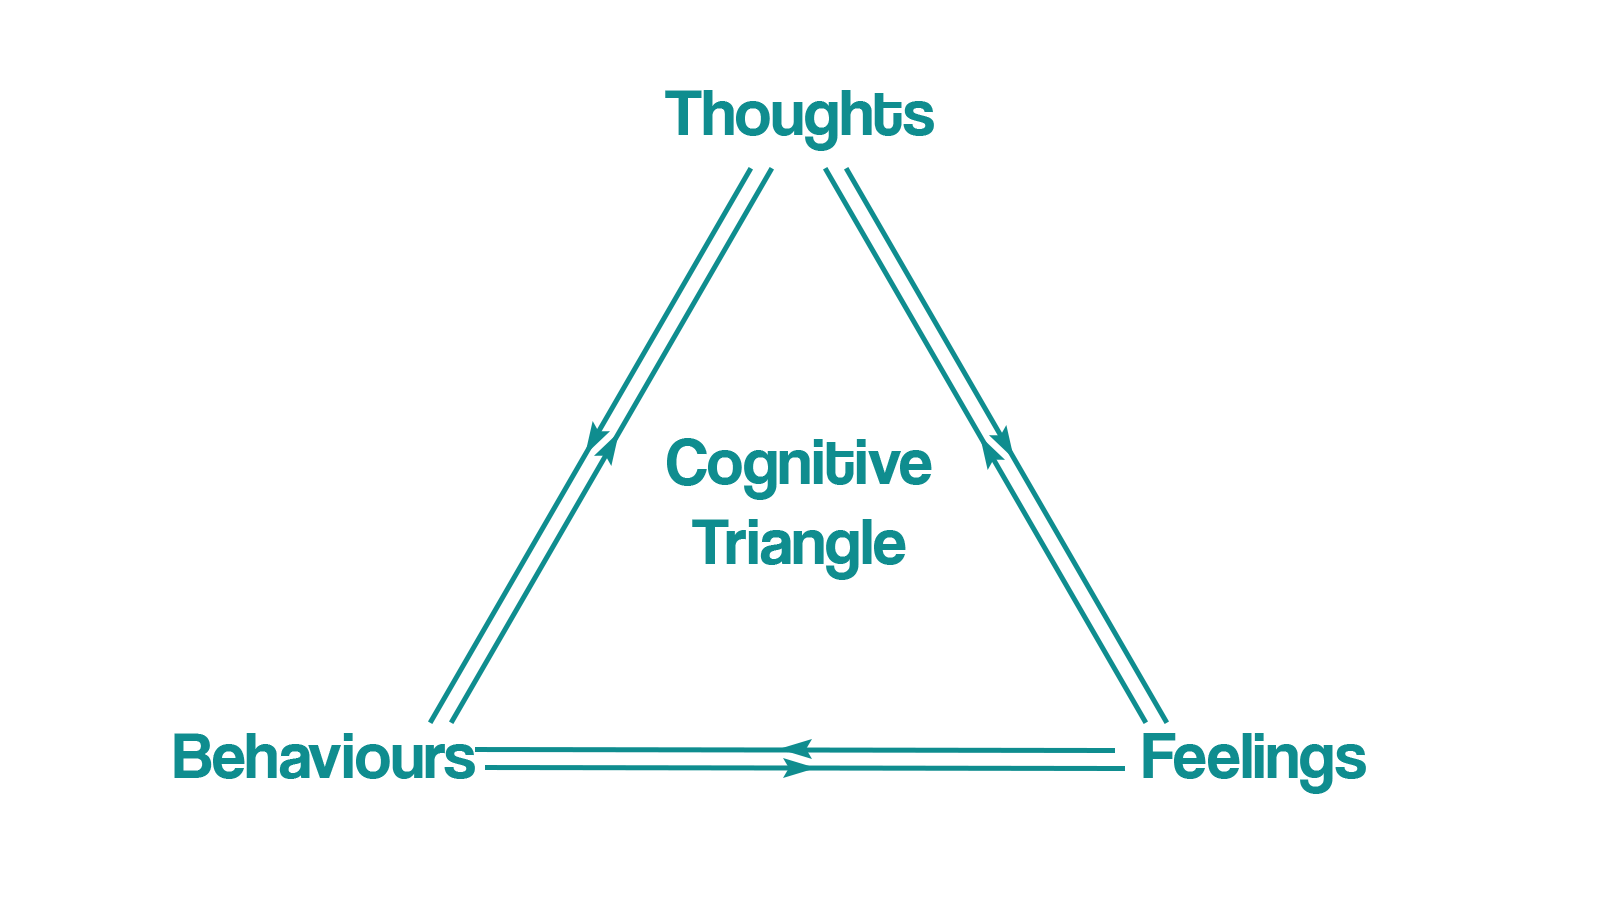 Cognitive Triangle by Engineer Your Life